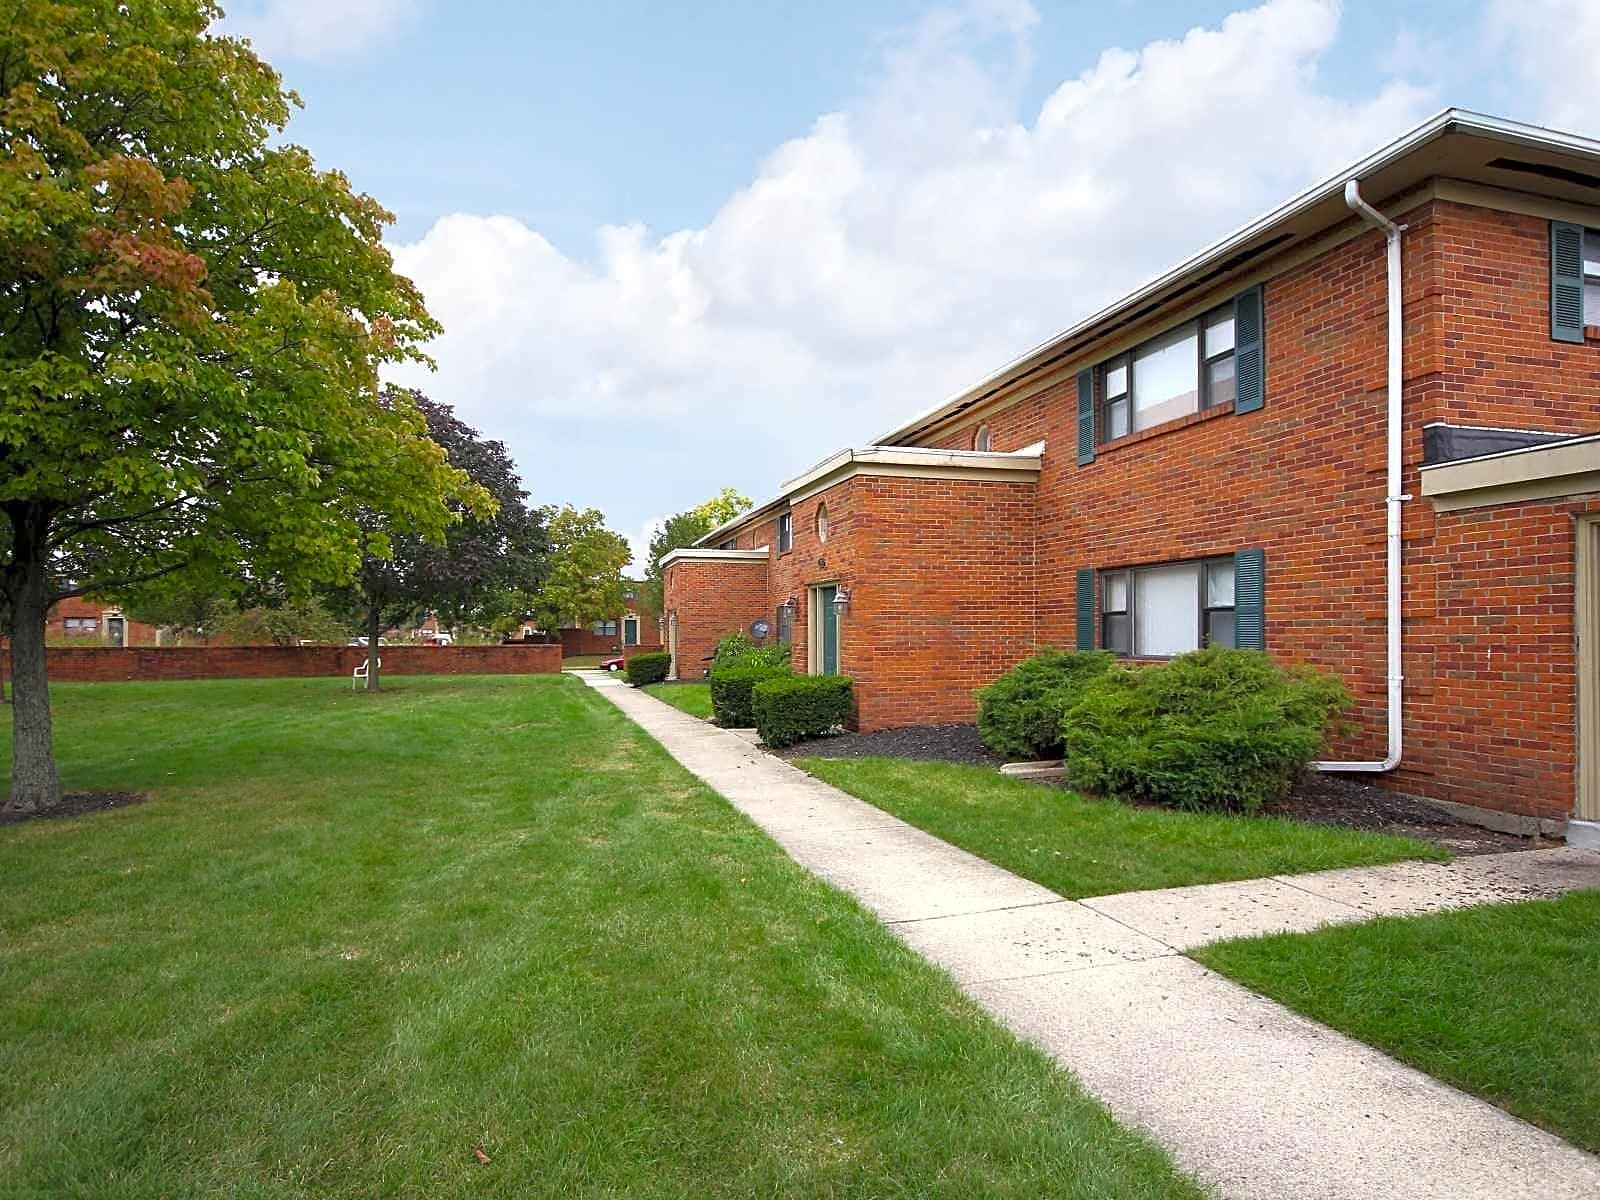 Grove City Ohio Apartments Houses Rent